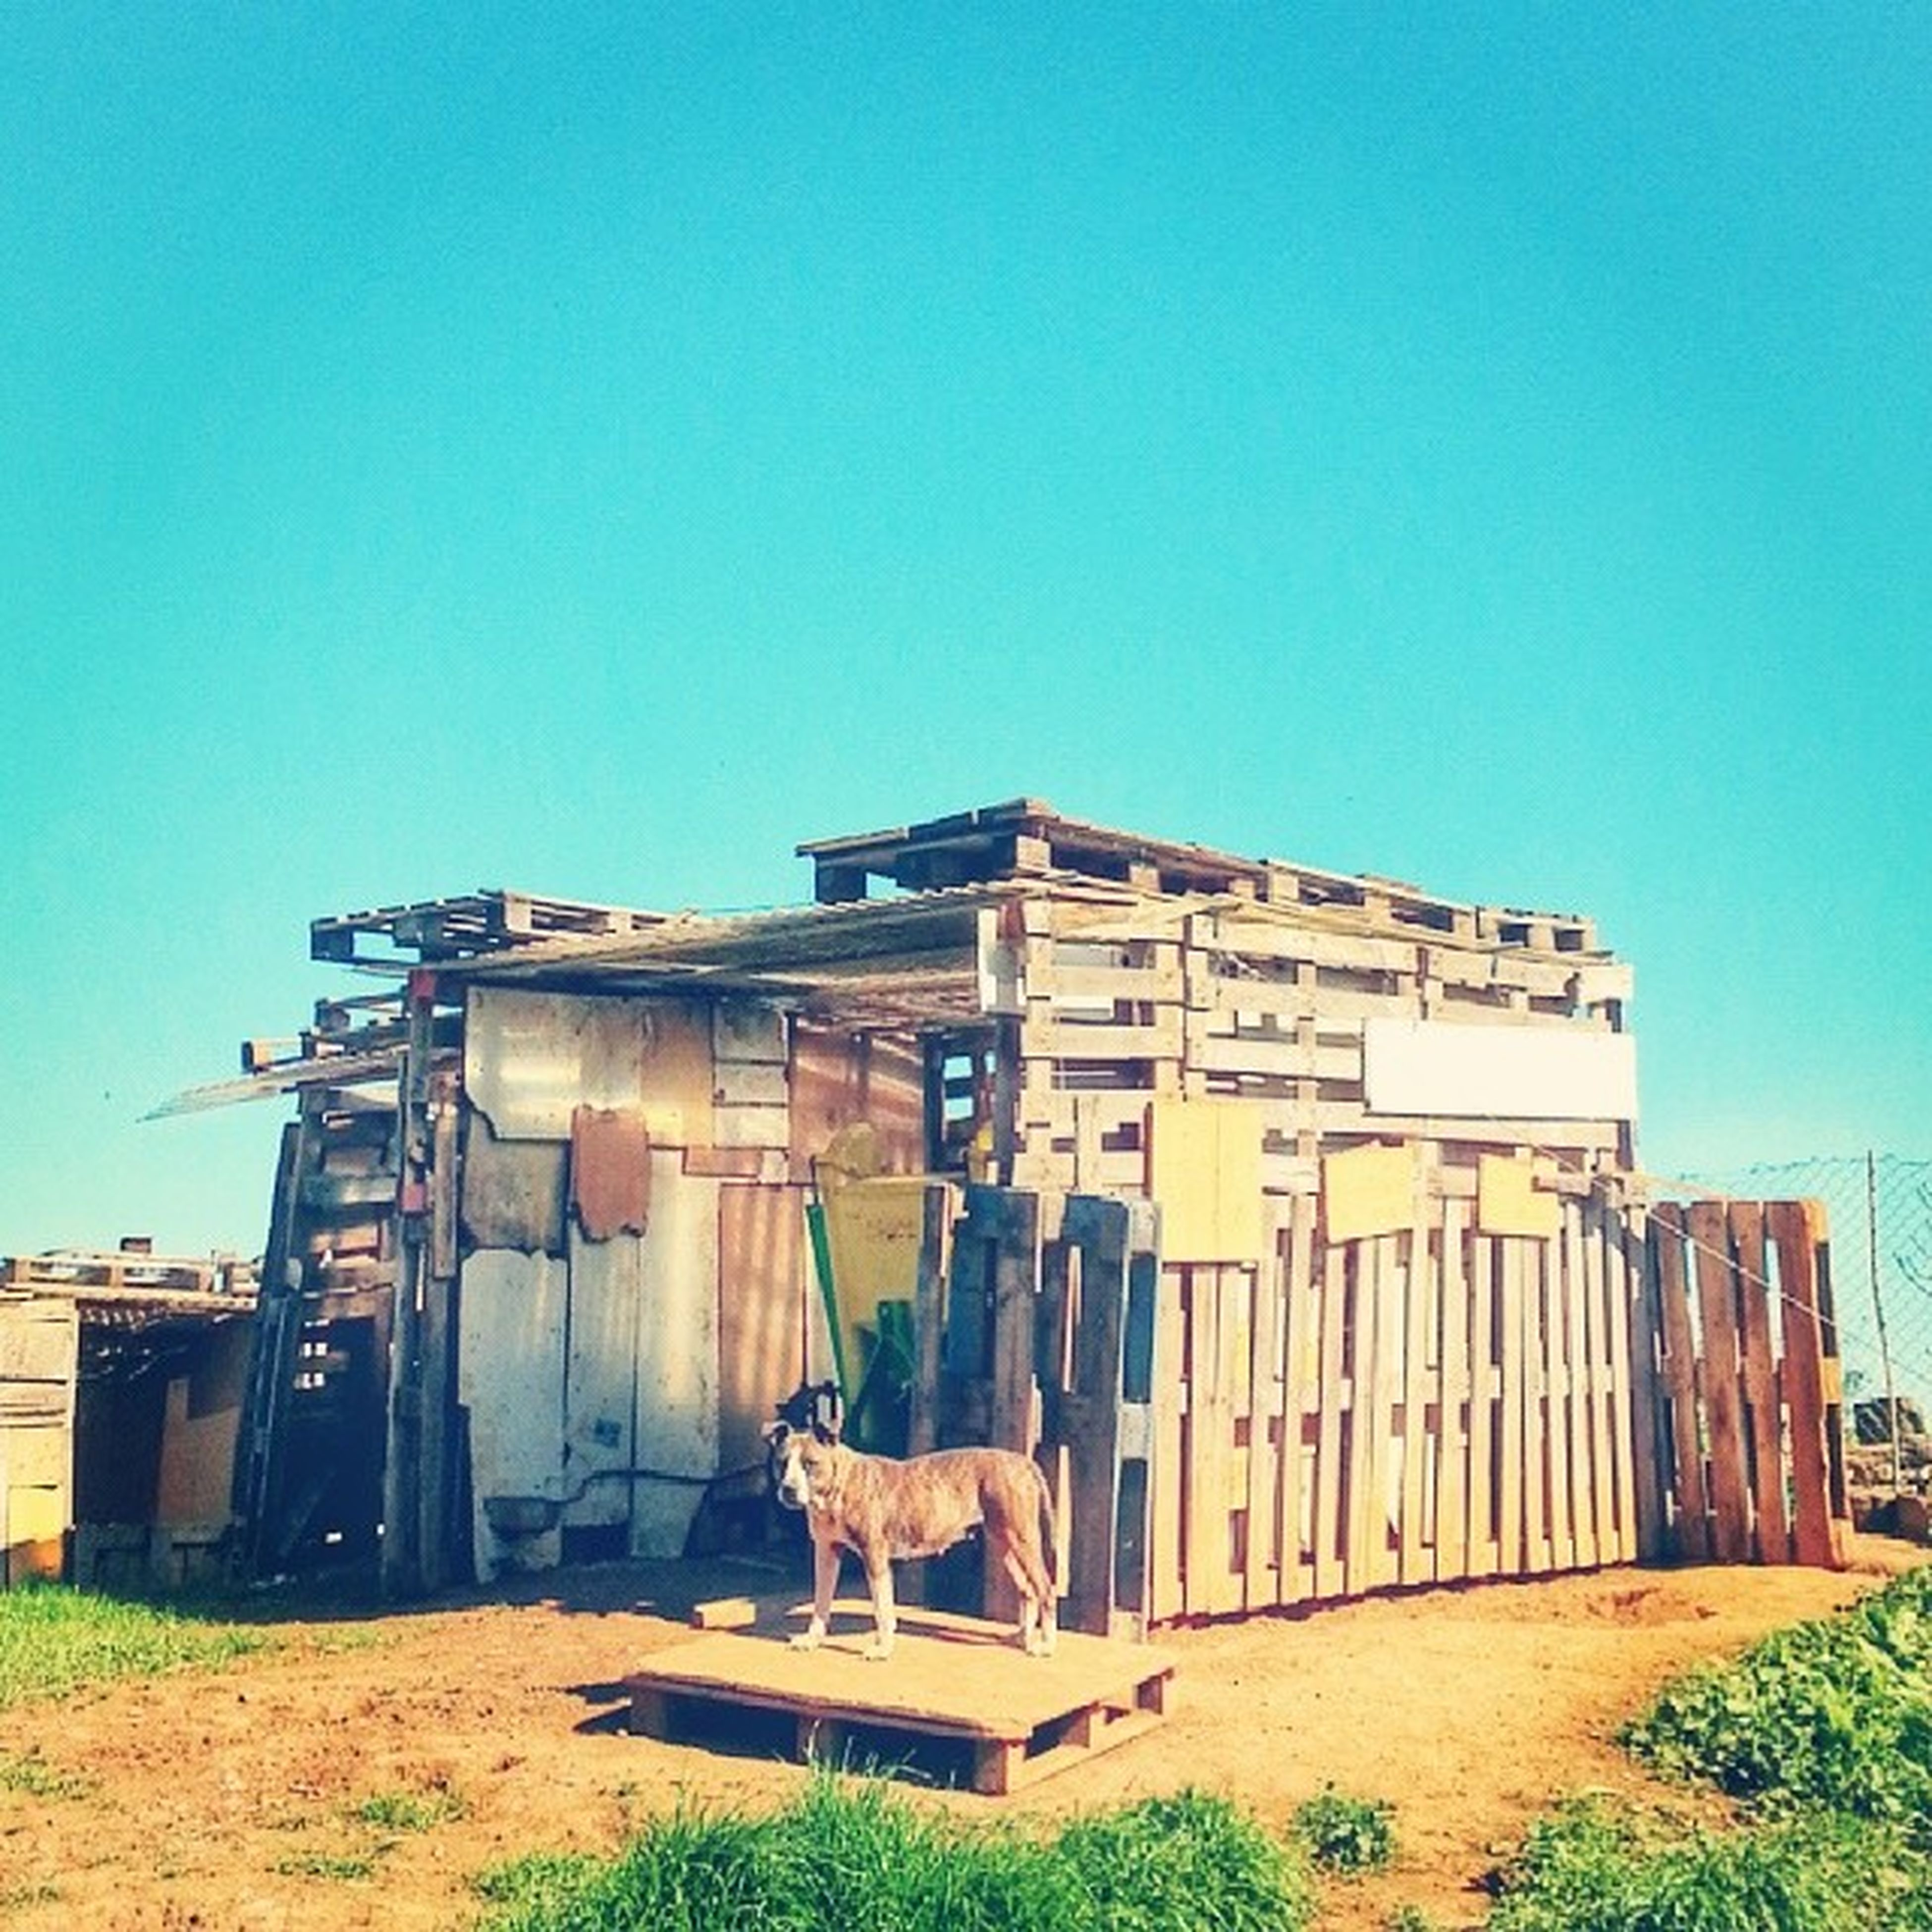 architecture, built structure, building exterior, clear sky, blue, grass, abandoned, copy space, house, old, residential structure, field, obsolete, run-down, barn, outdoors, sunlight, damaged, day, no people